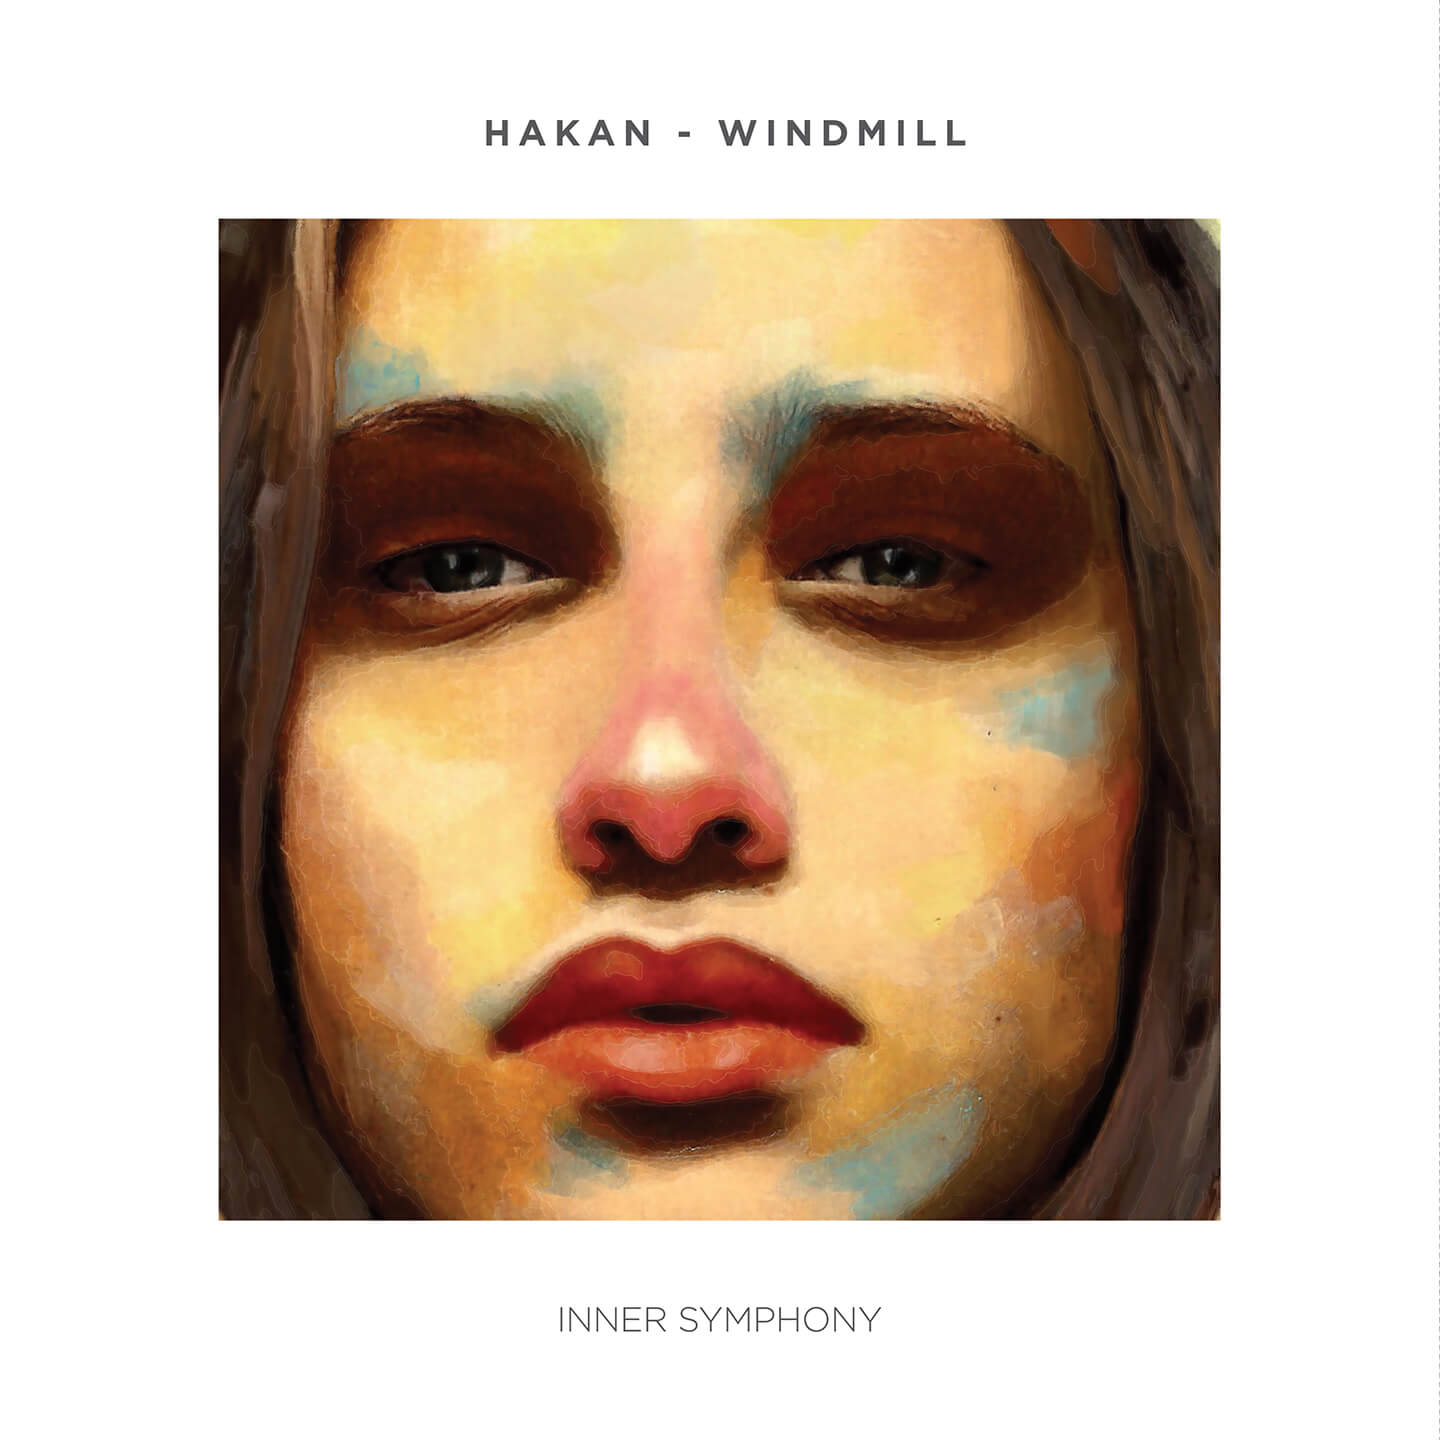 IS032 Inner Symphony - hakan - Windmill